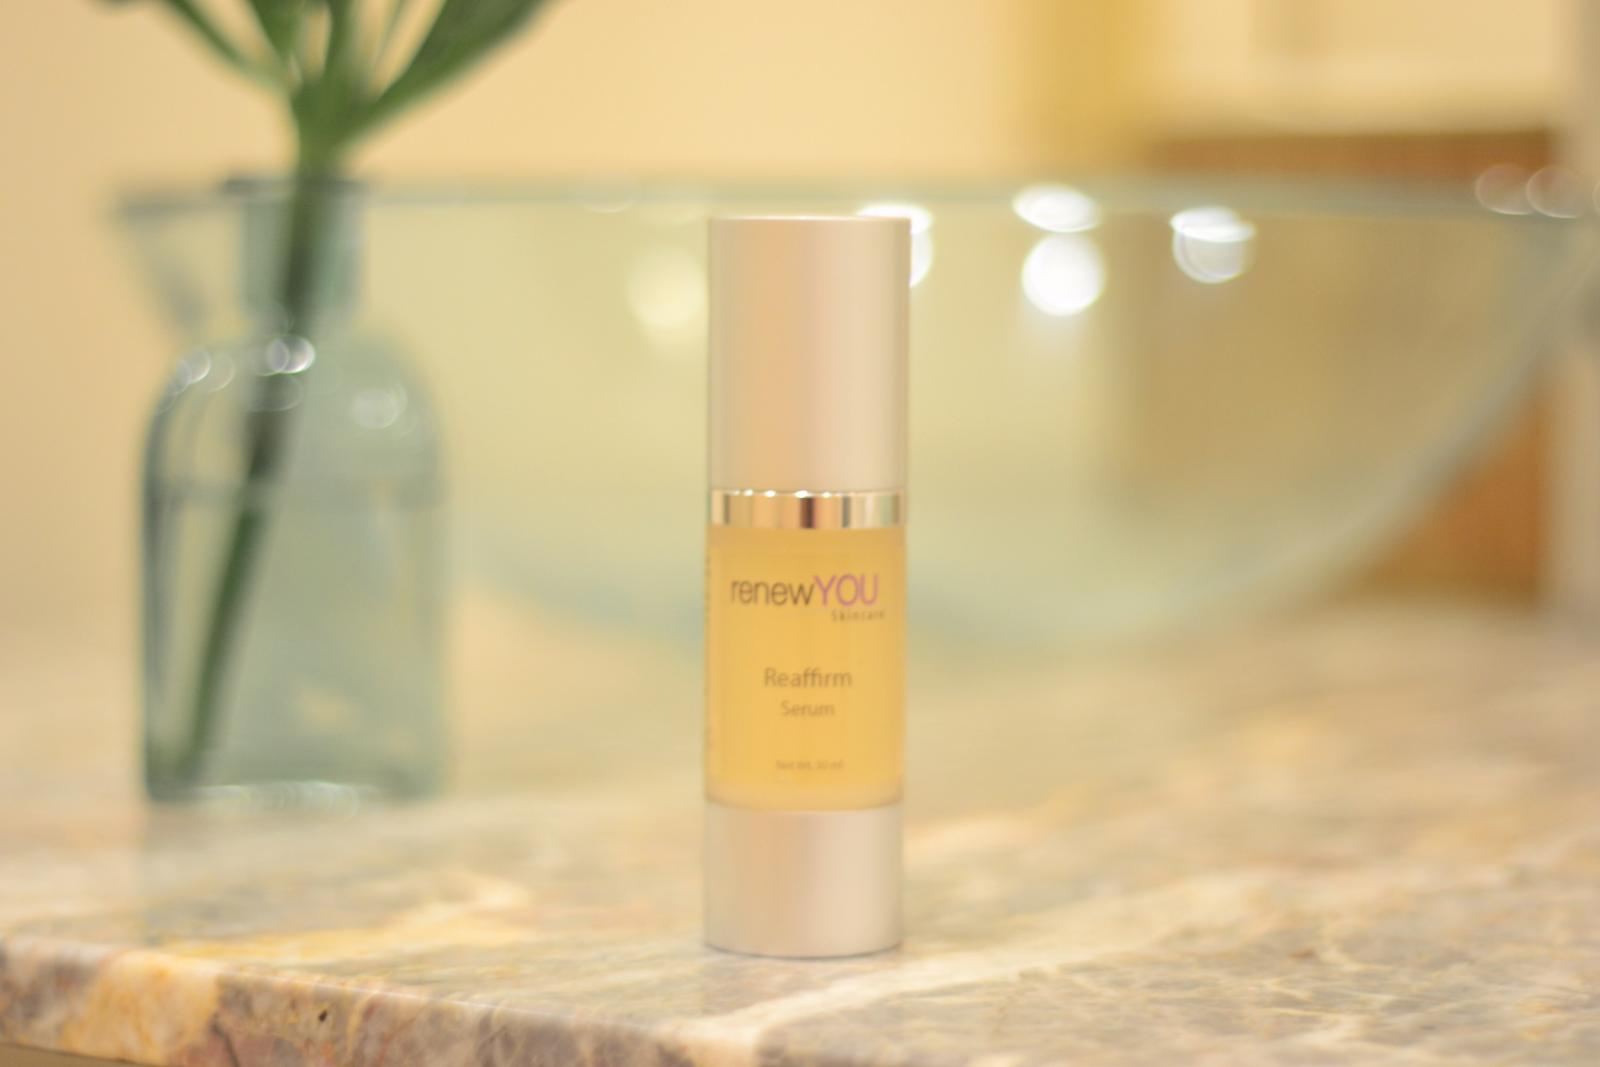 renewyou reaffirm serum-review